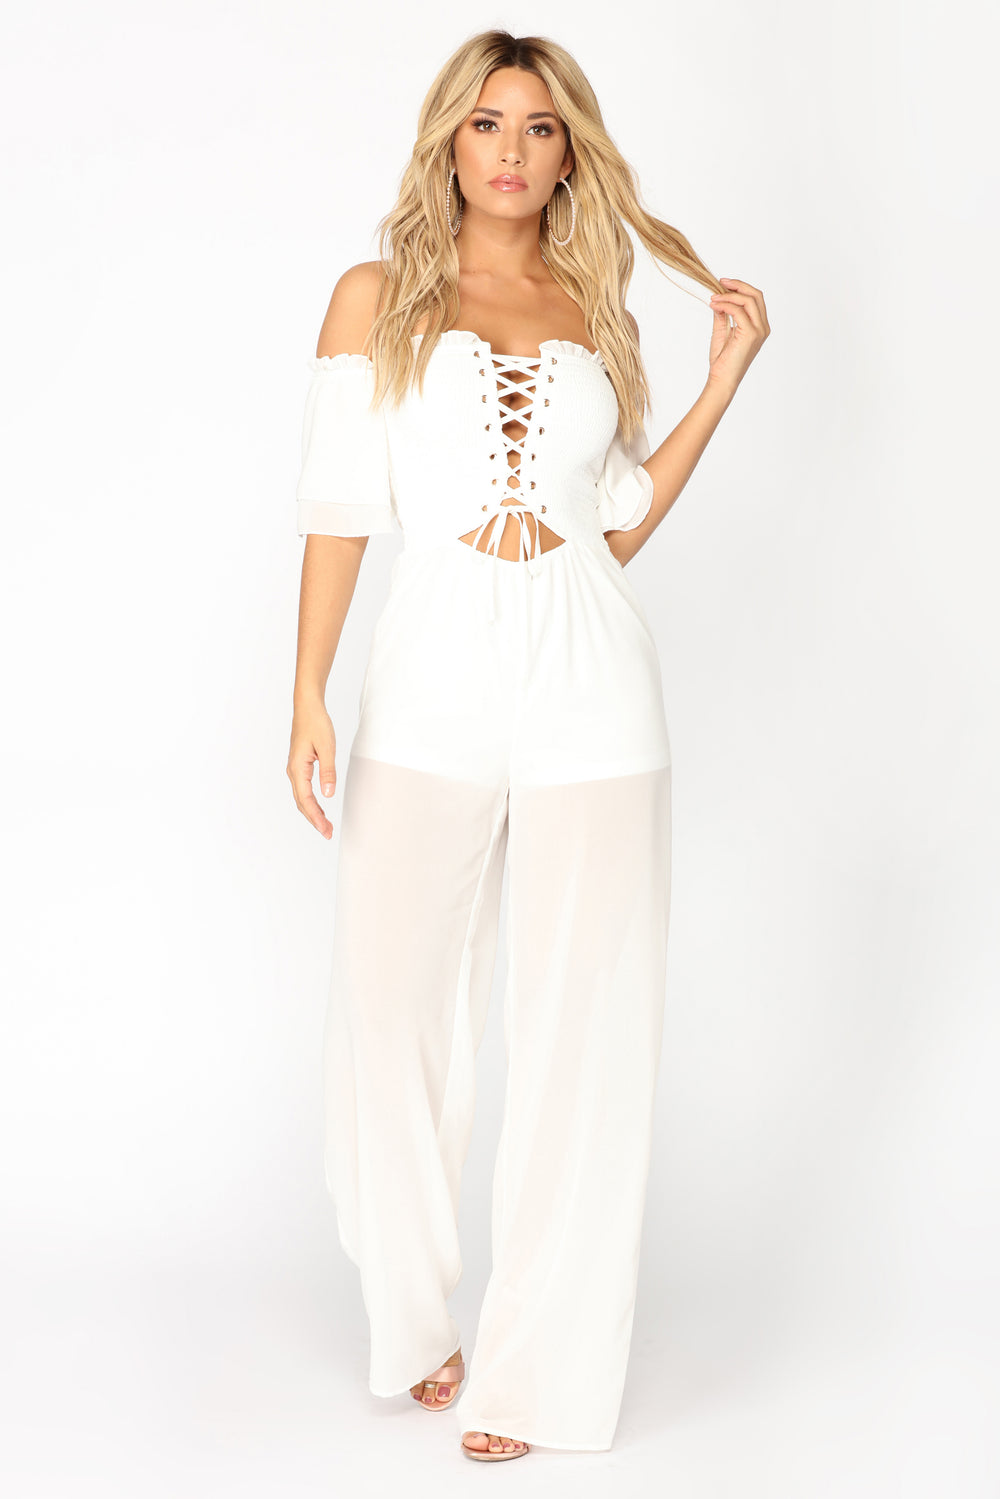 Set Sail Smocked Jumpsuit - White